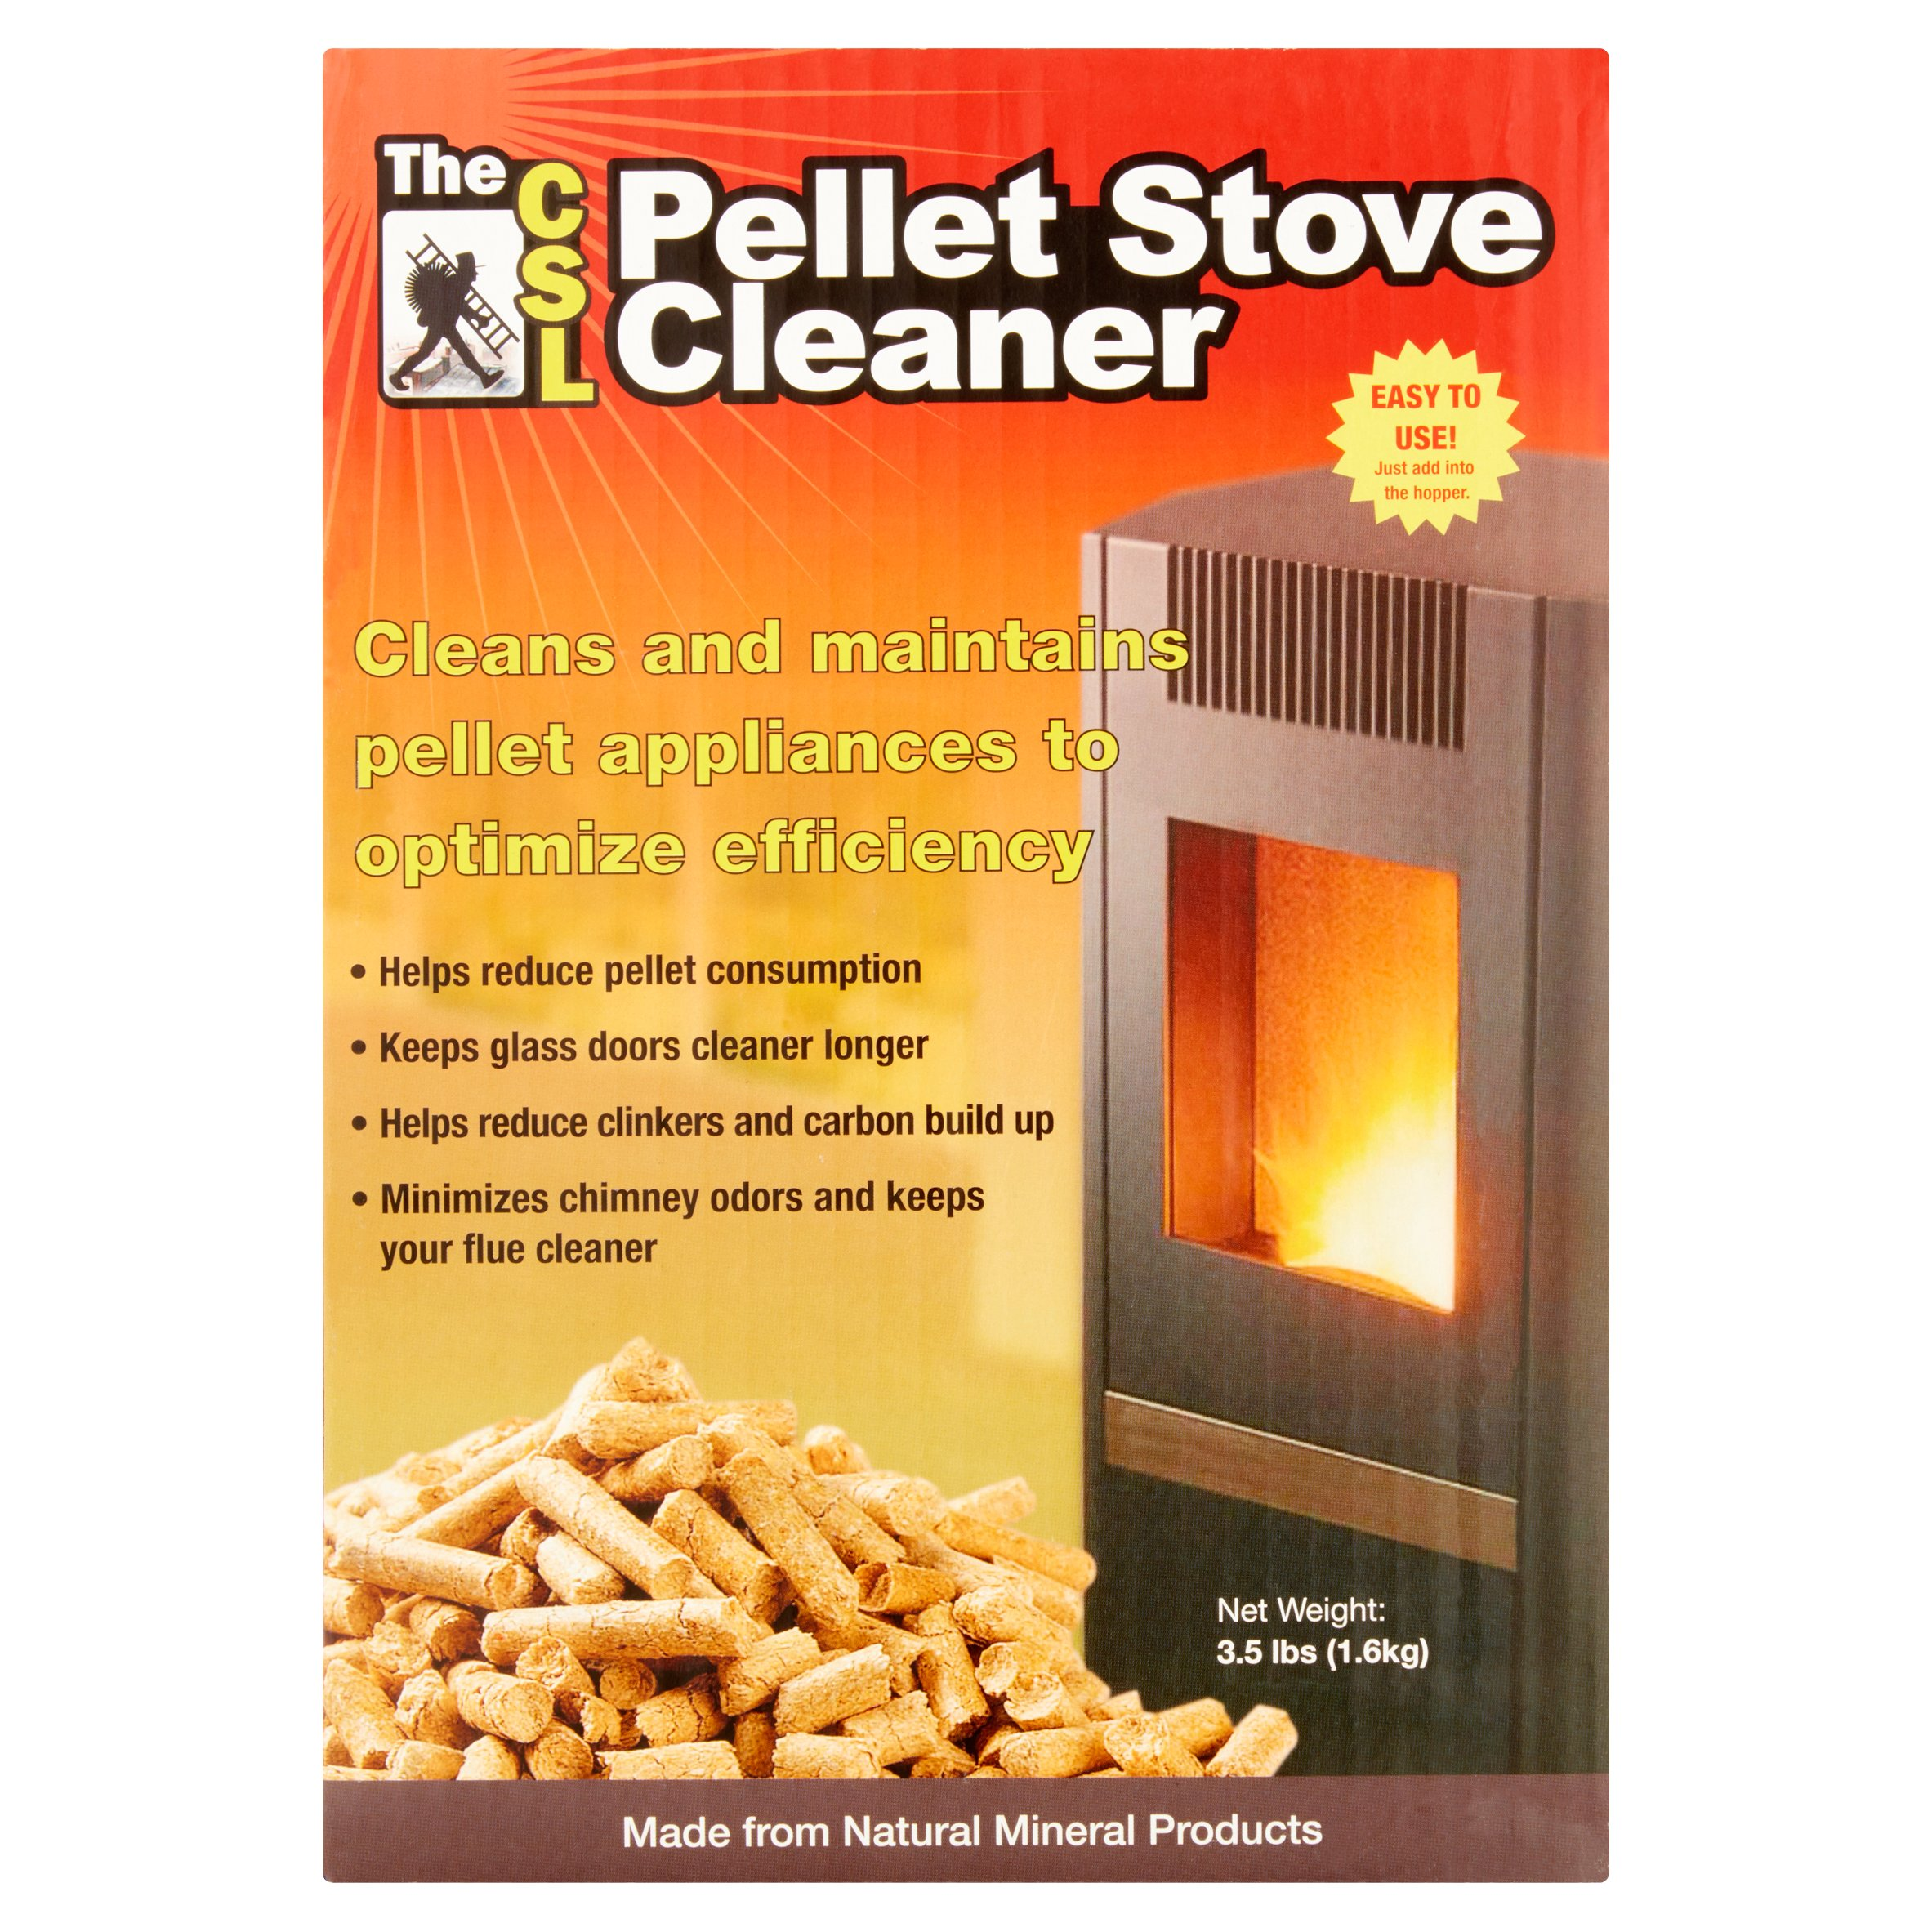 As Seen on TV CSL Pellet Stove Cleaner by Joseph Entrprises Inc.